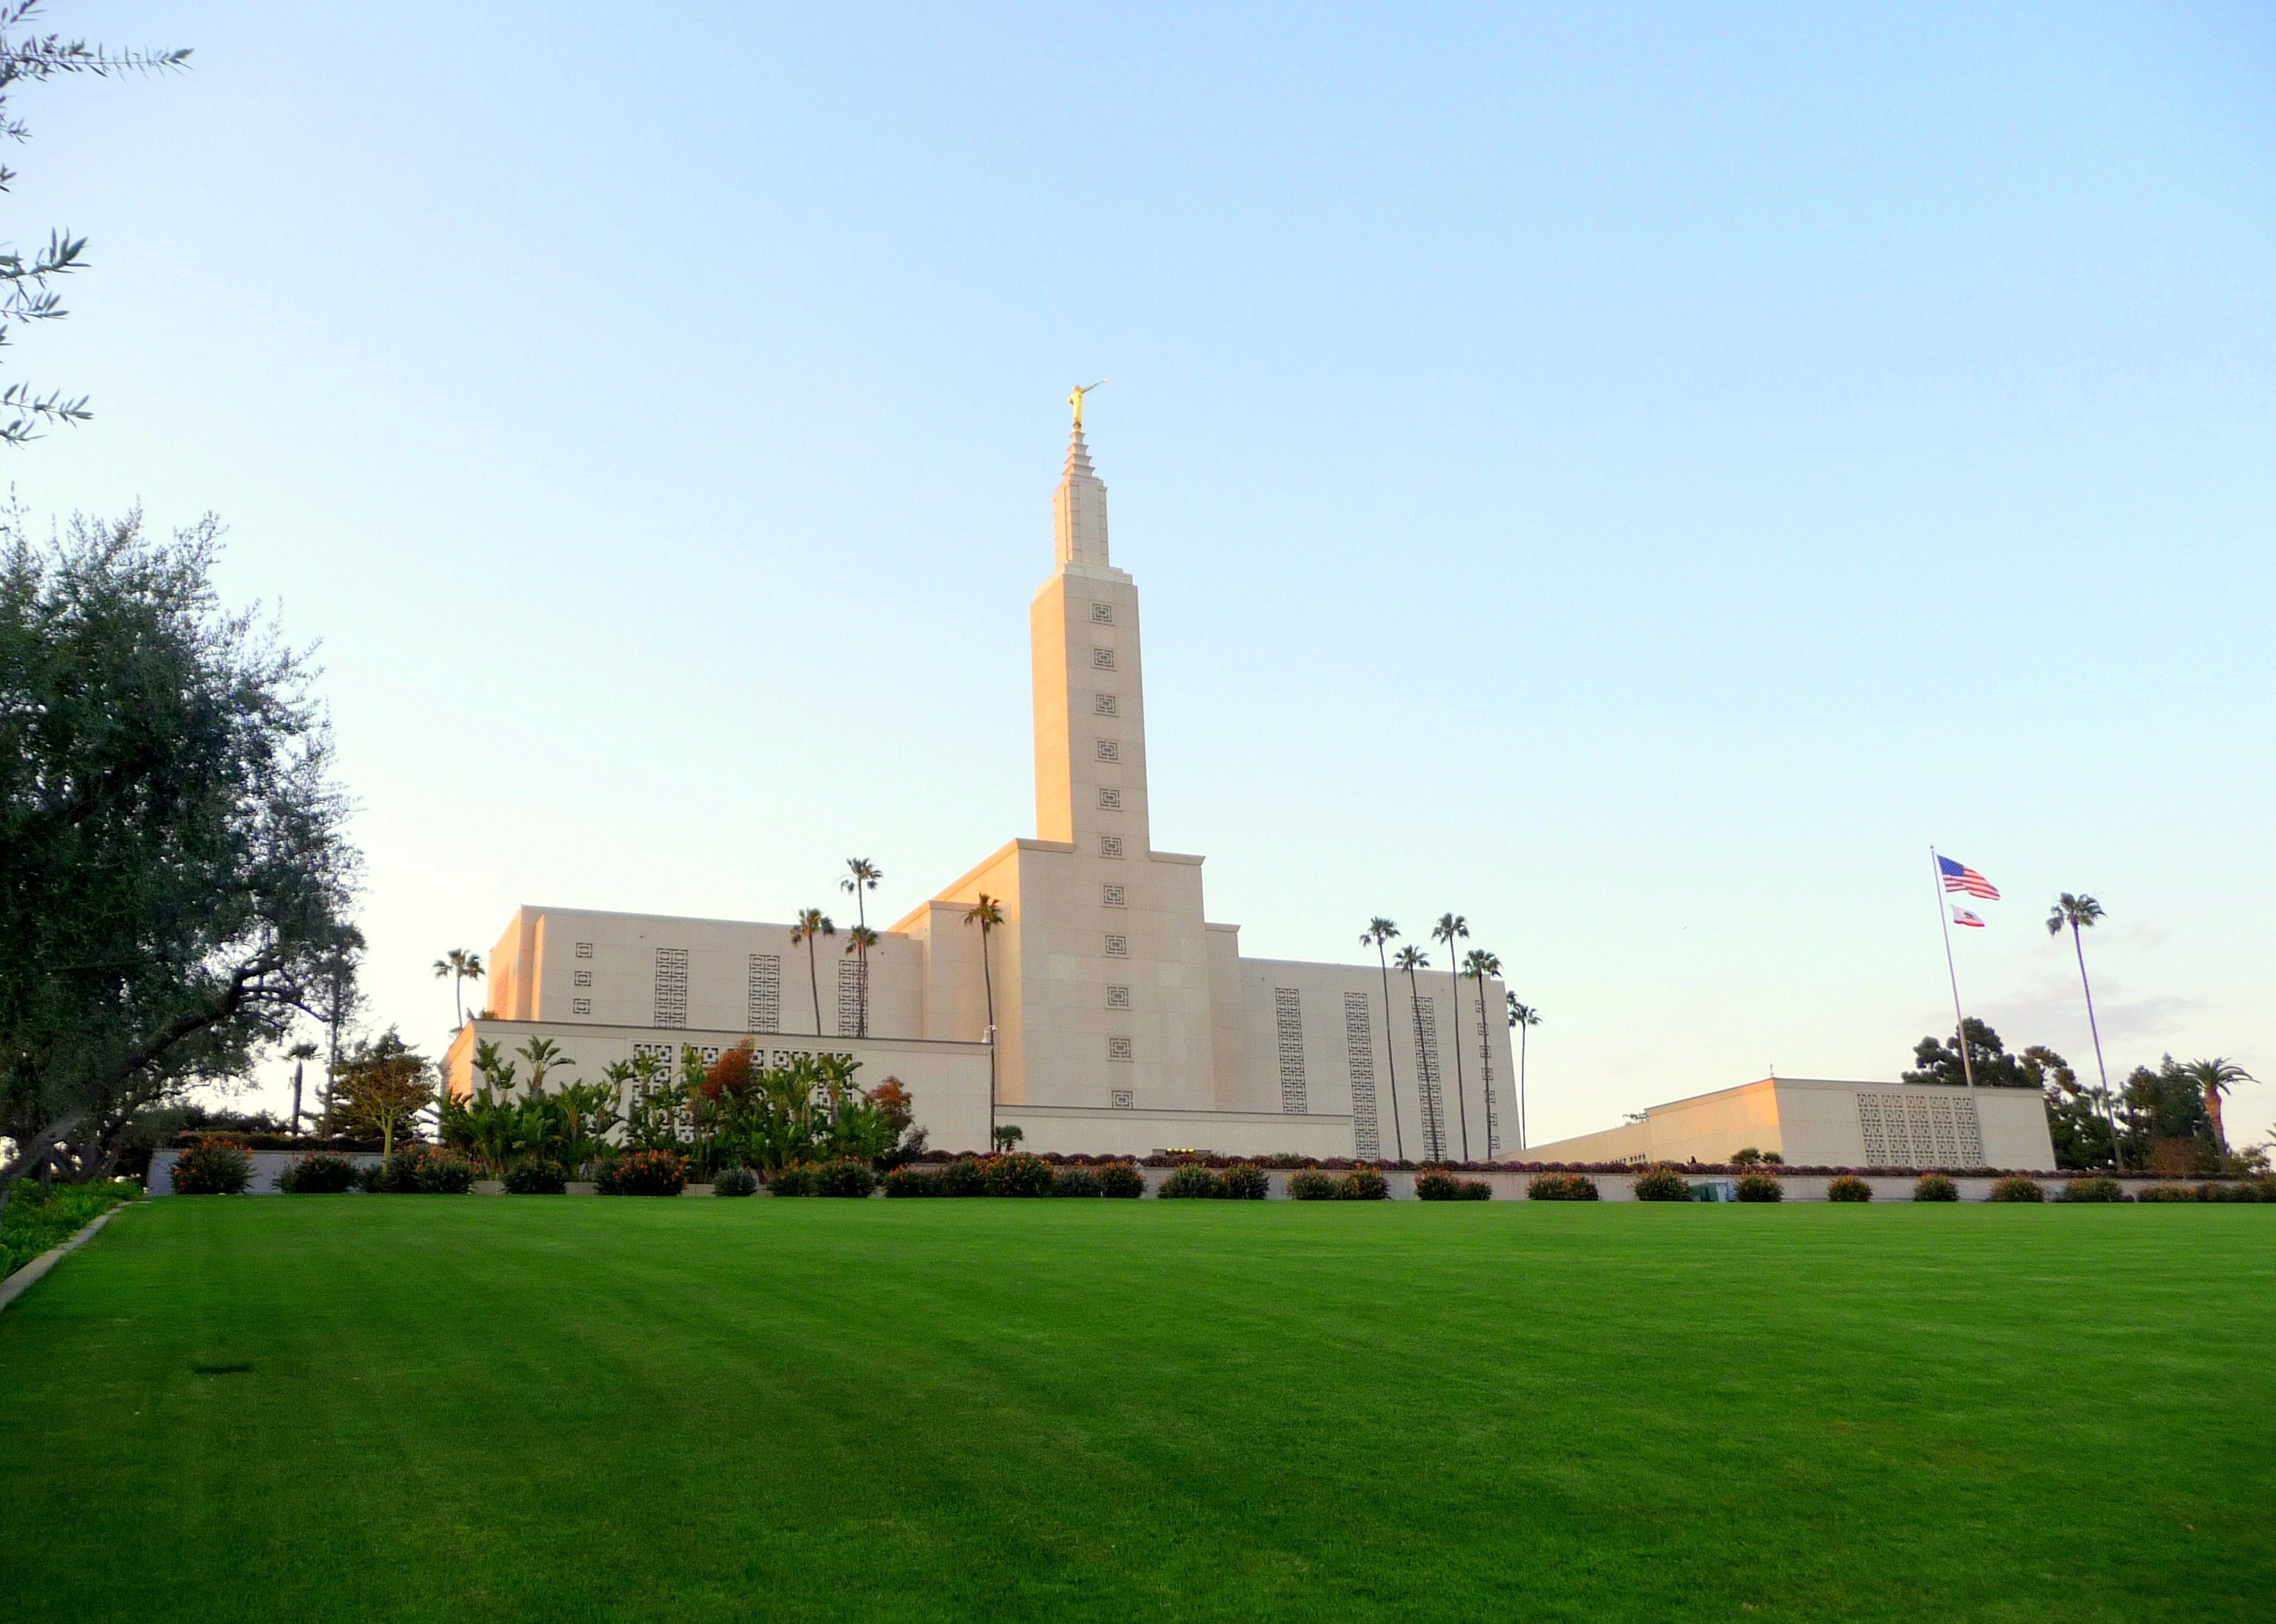 The Los Angeles California Temple and grounds on a clear day.